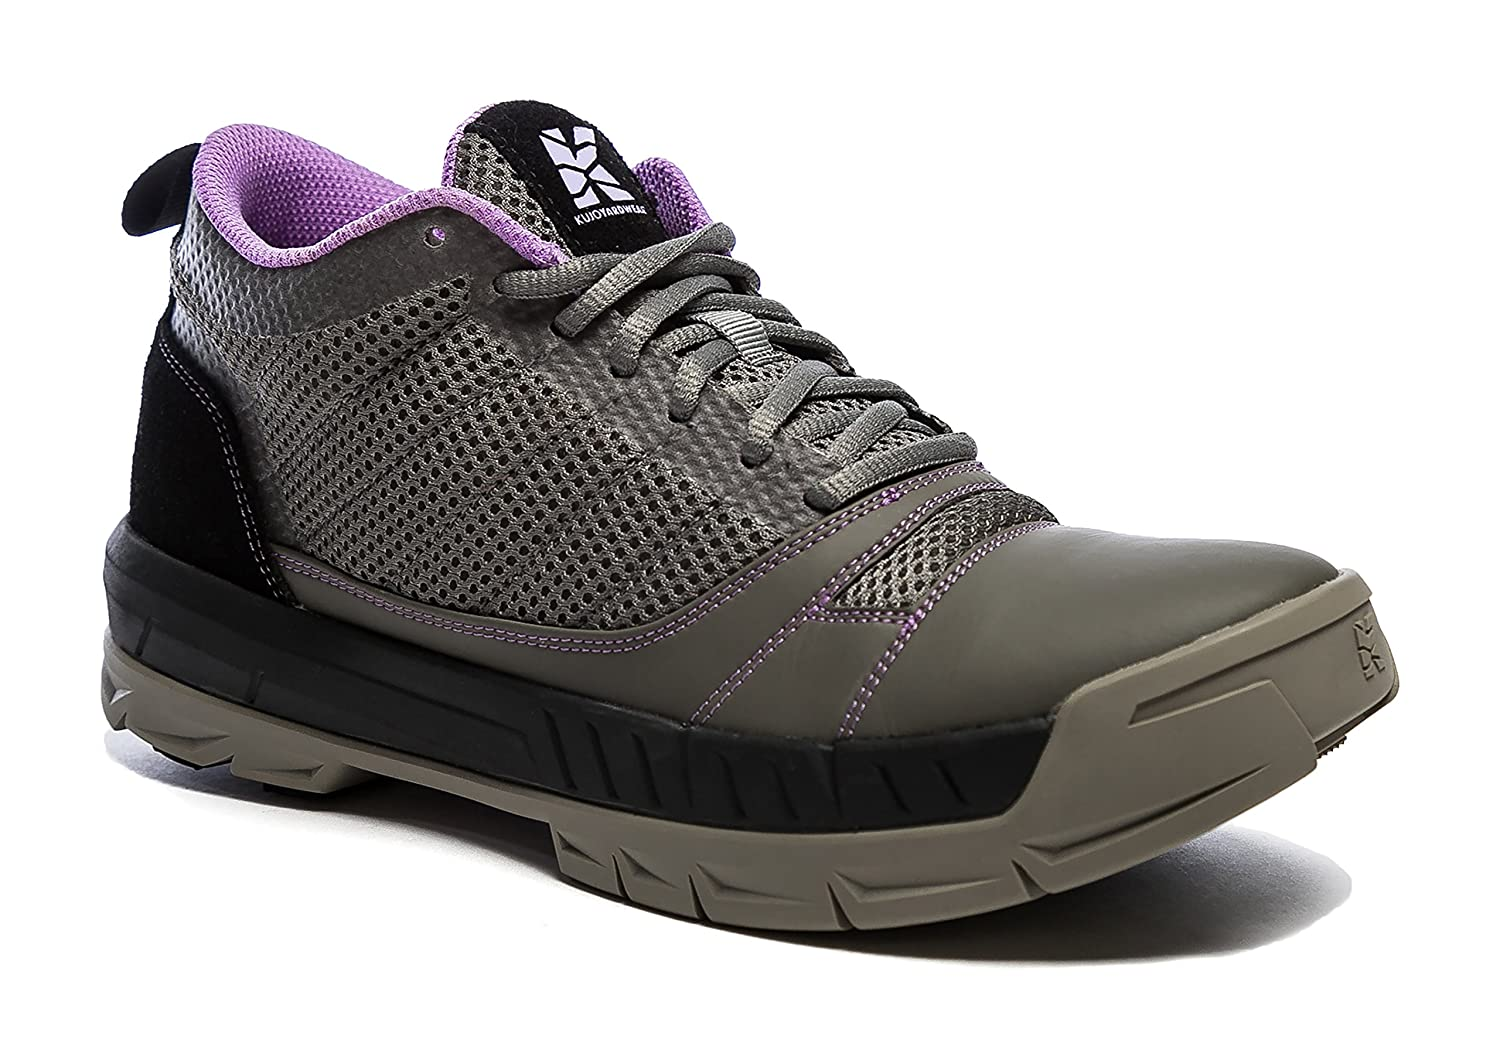 Kujo Yardwear Lightweight Breathable Yard Work Shoe B0793VKHKK 8.5 B(M) Women / 7 D(M) US Men|Grey / Purple